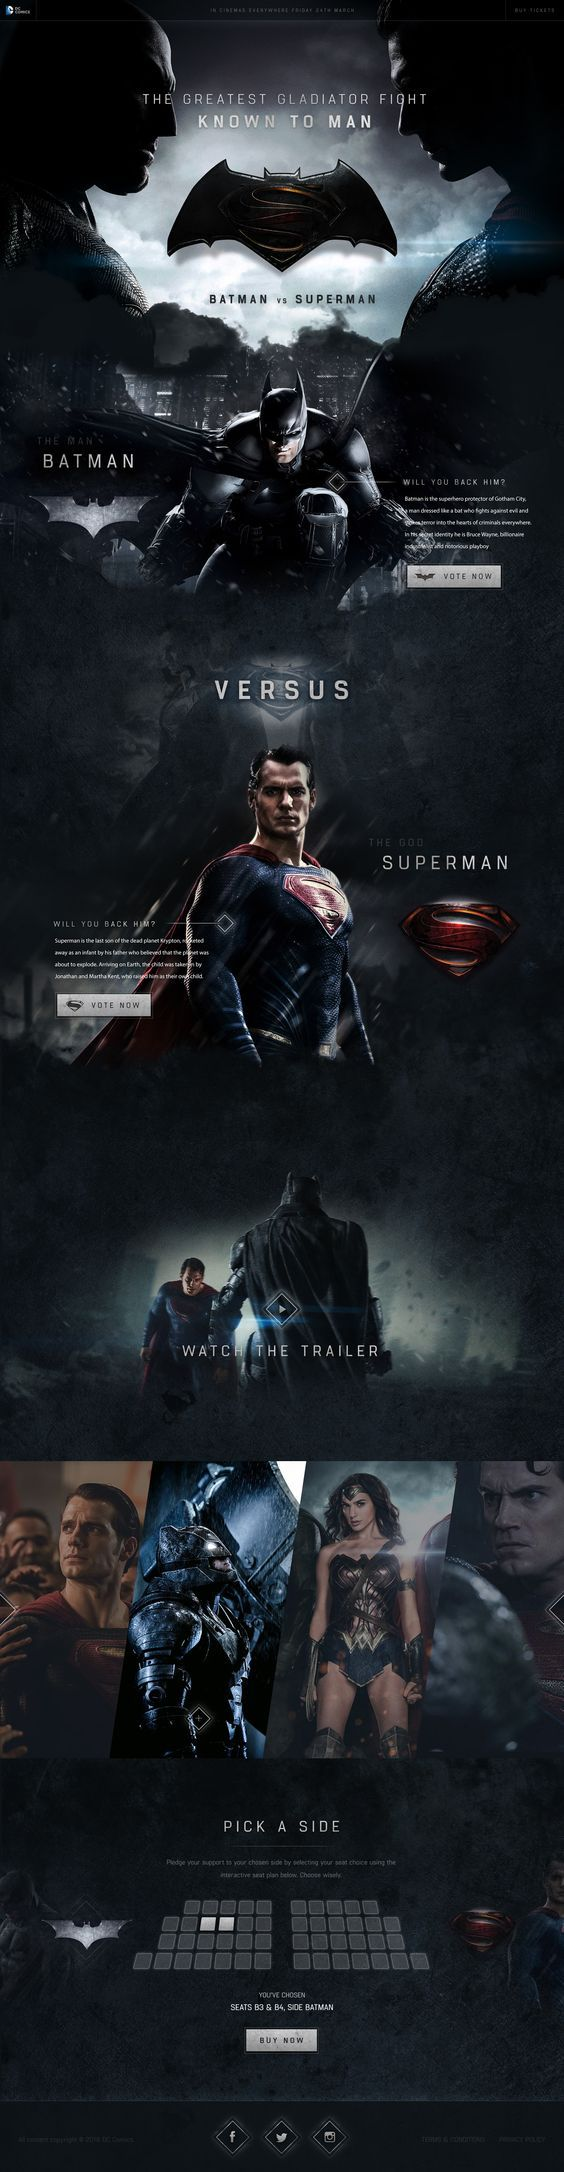 https://dribbble.com/shots/2609276-Batman-vs-Superman-Concept